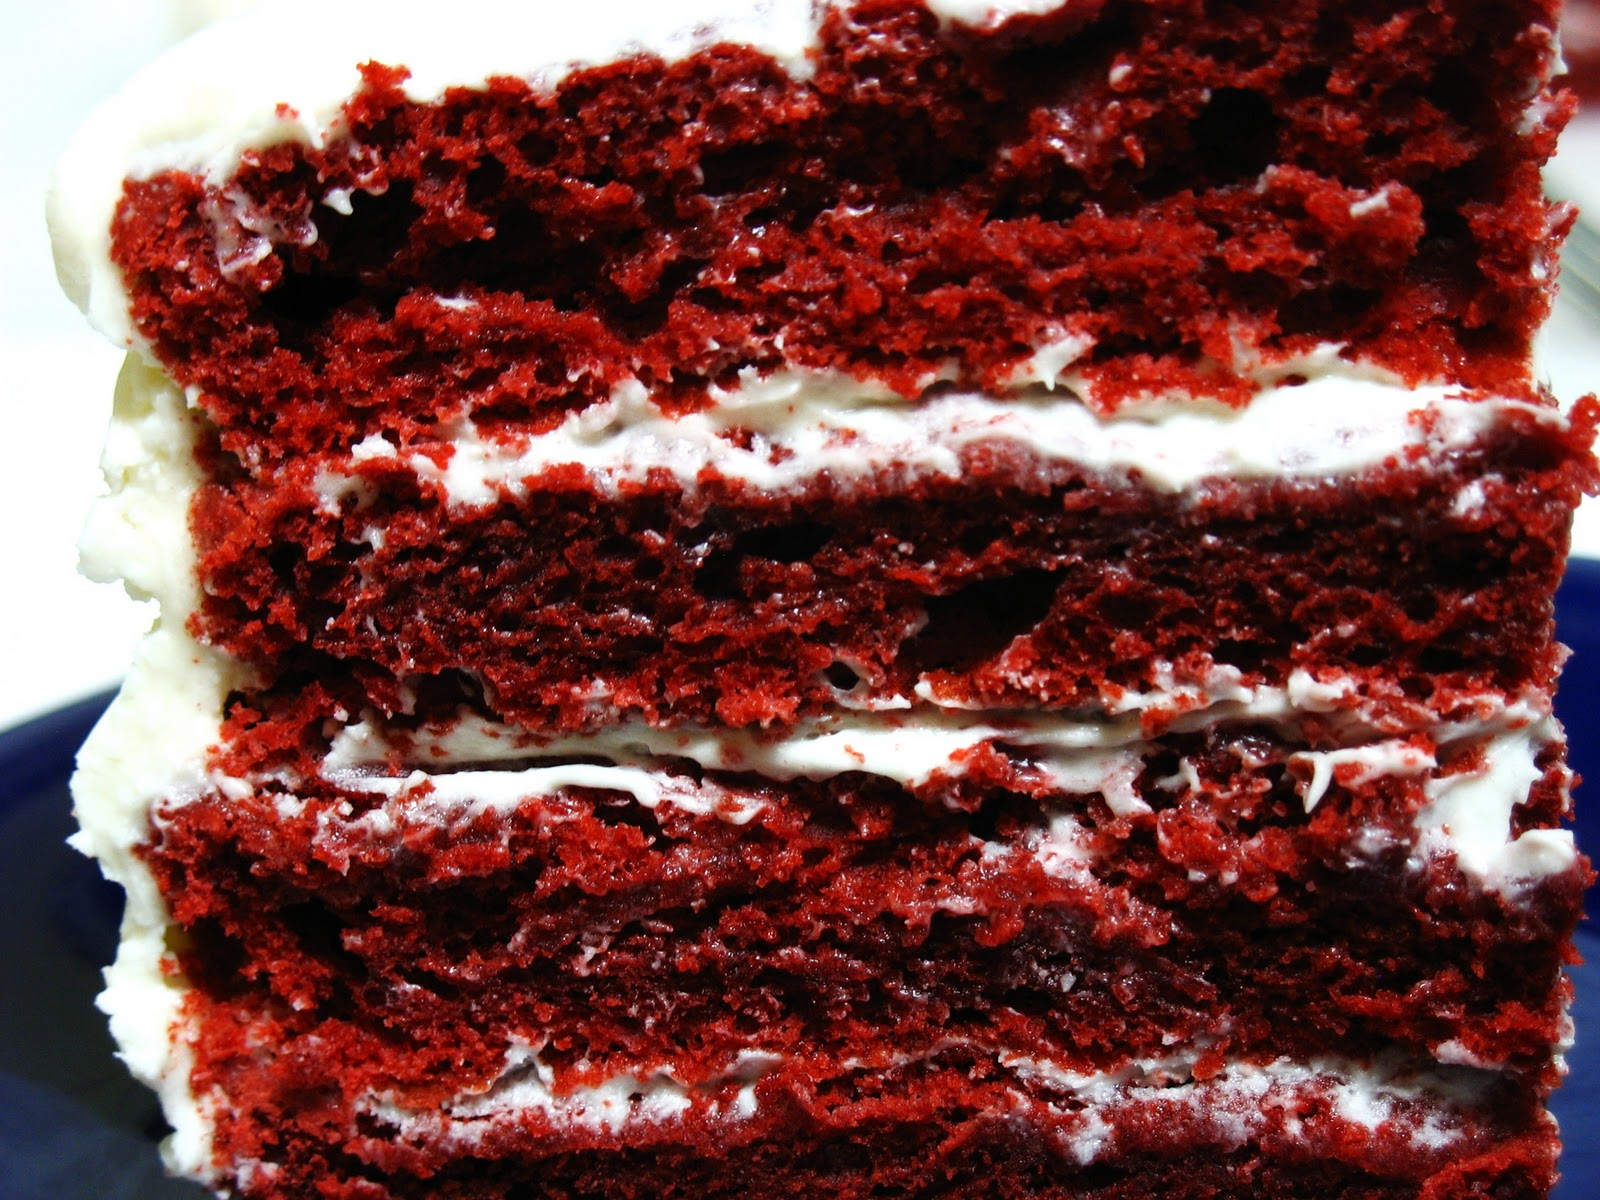 Image Gf Red Velvet Cake 023 Jpg Gluten Free Recipes Wiki